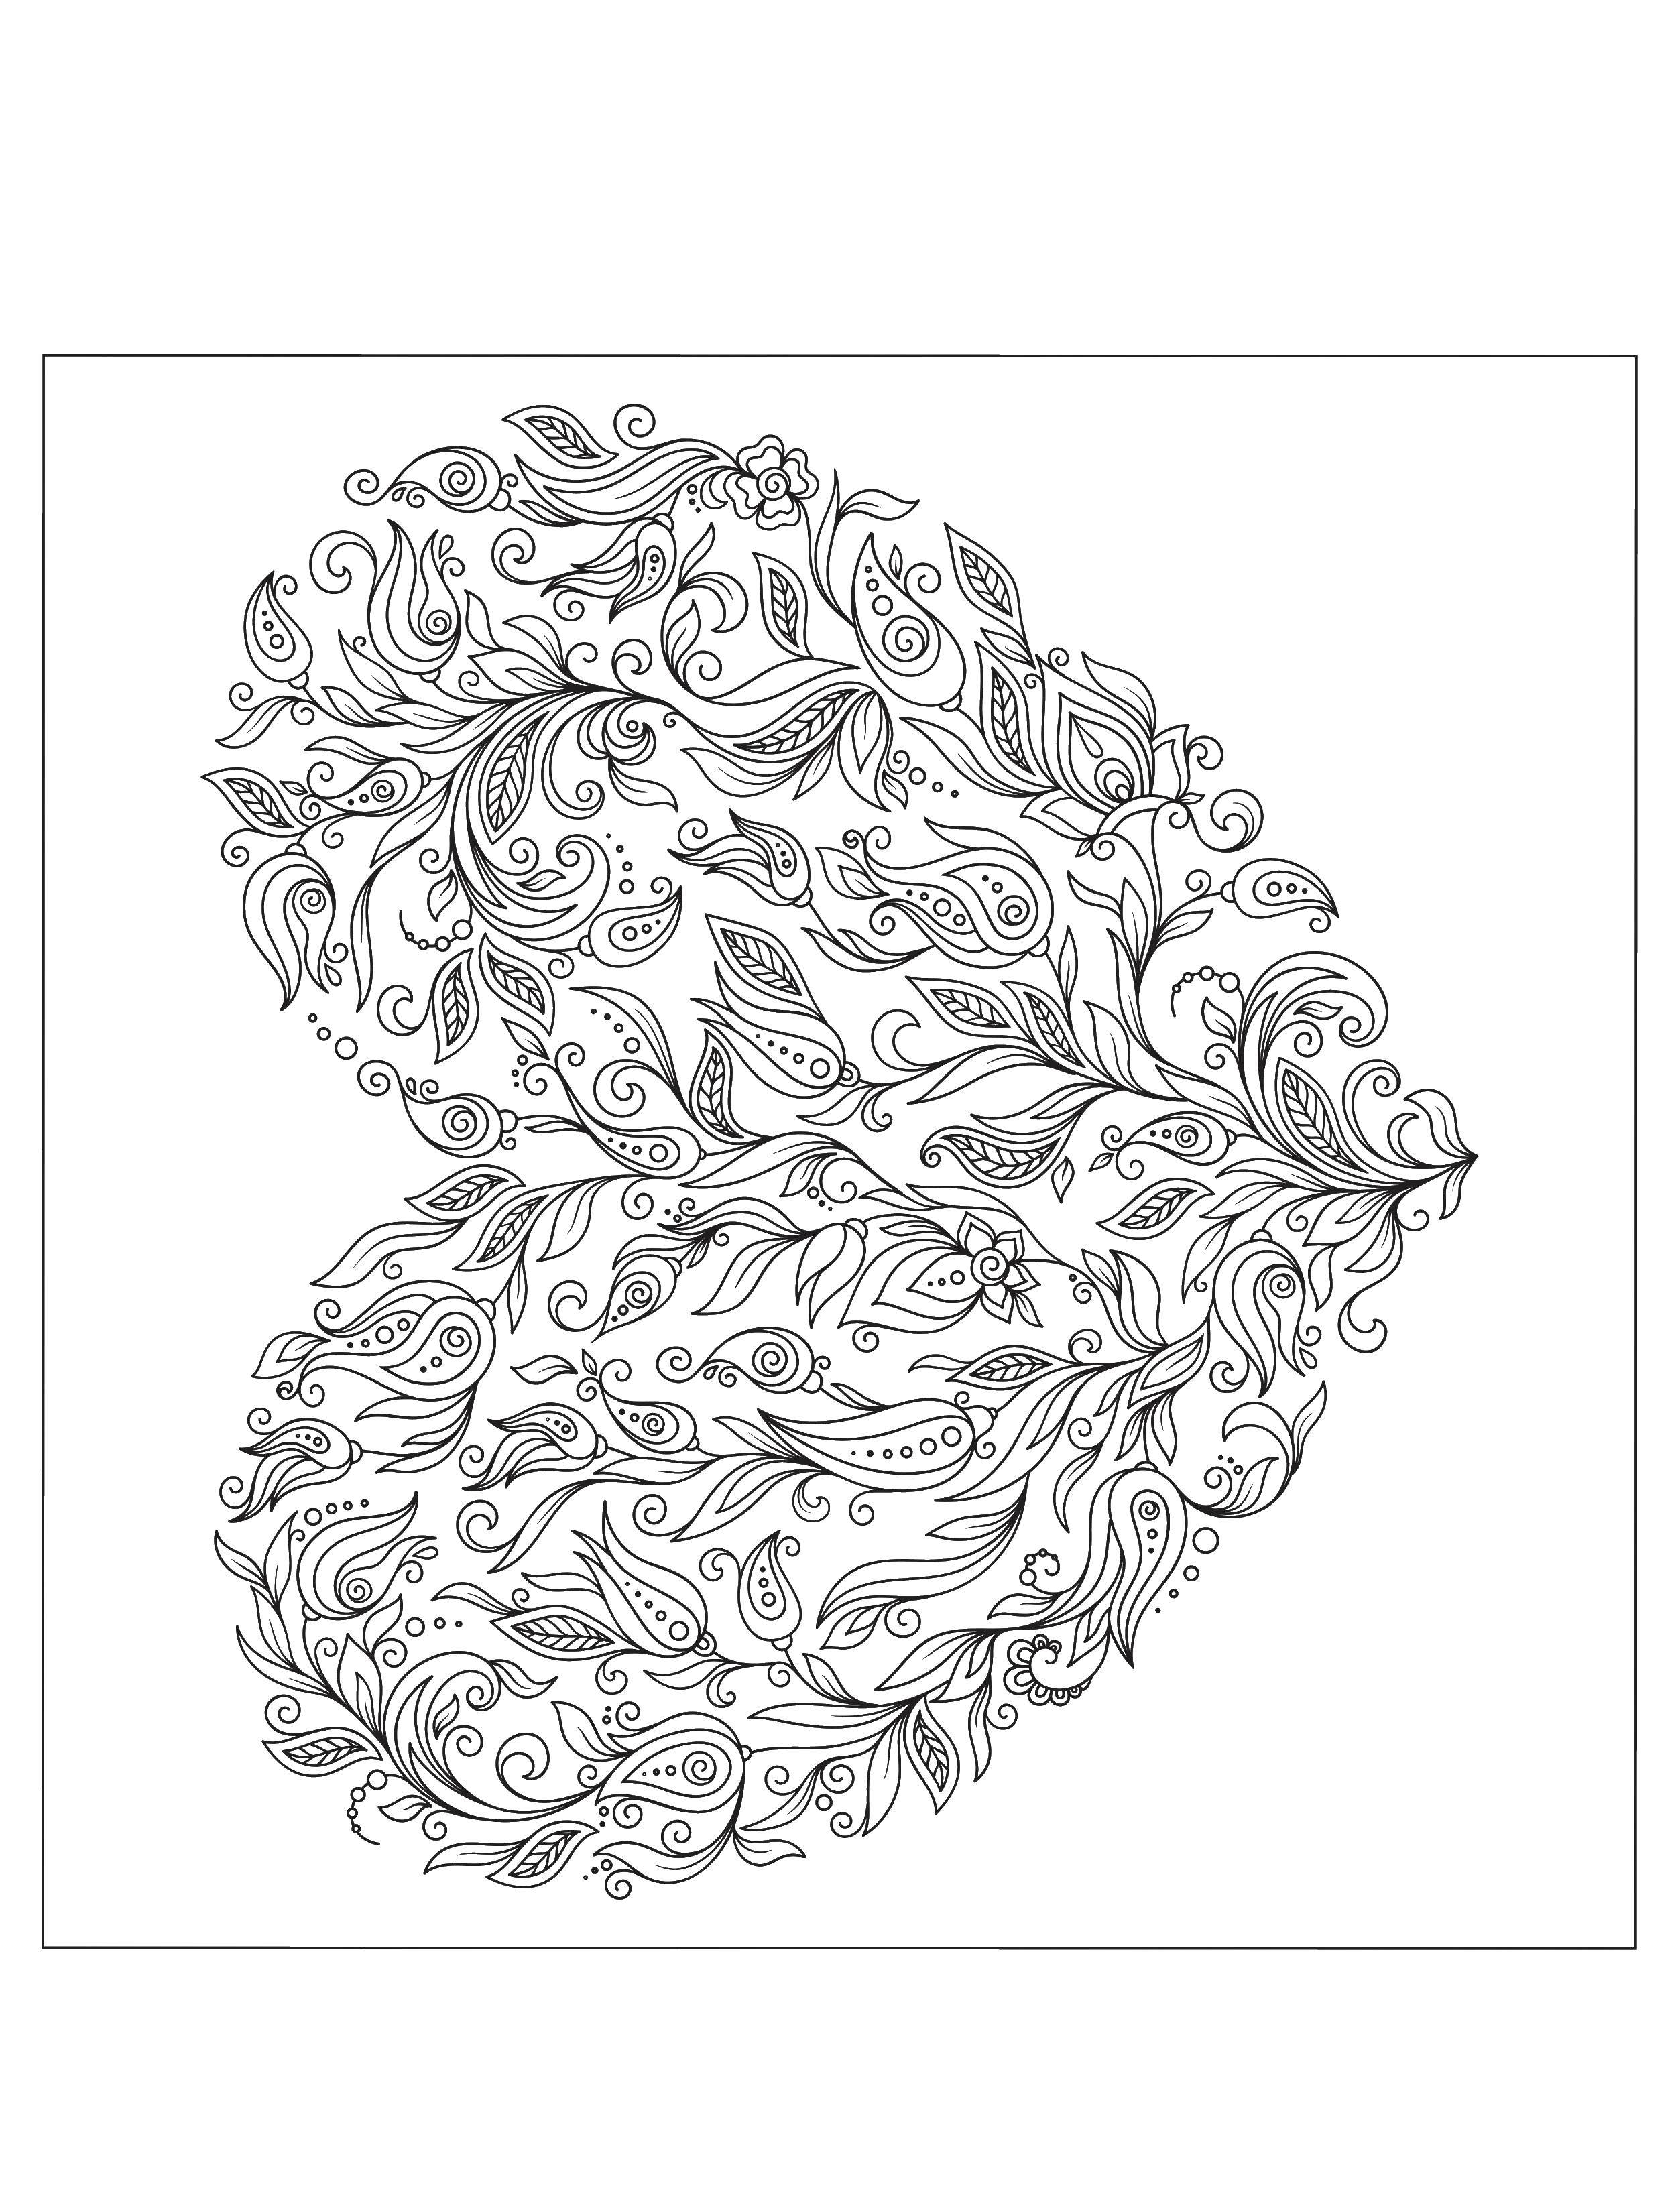 Coloring sheet patterns Download how to draw animals, birds.  Print ,how to draw by stages in pencil,